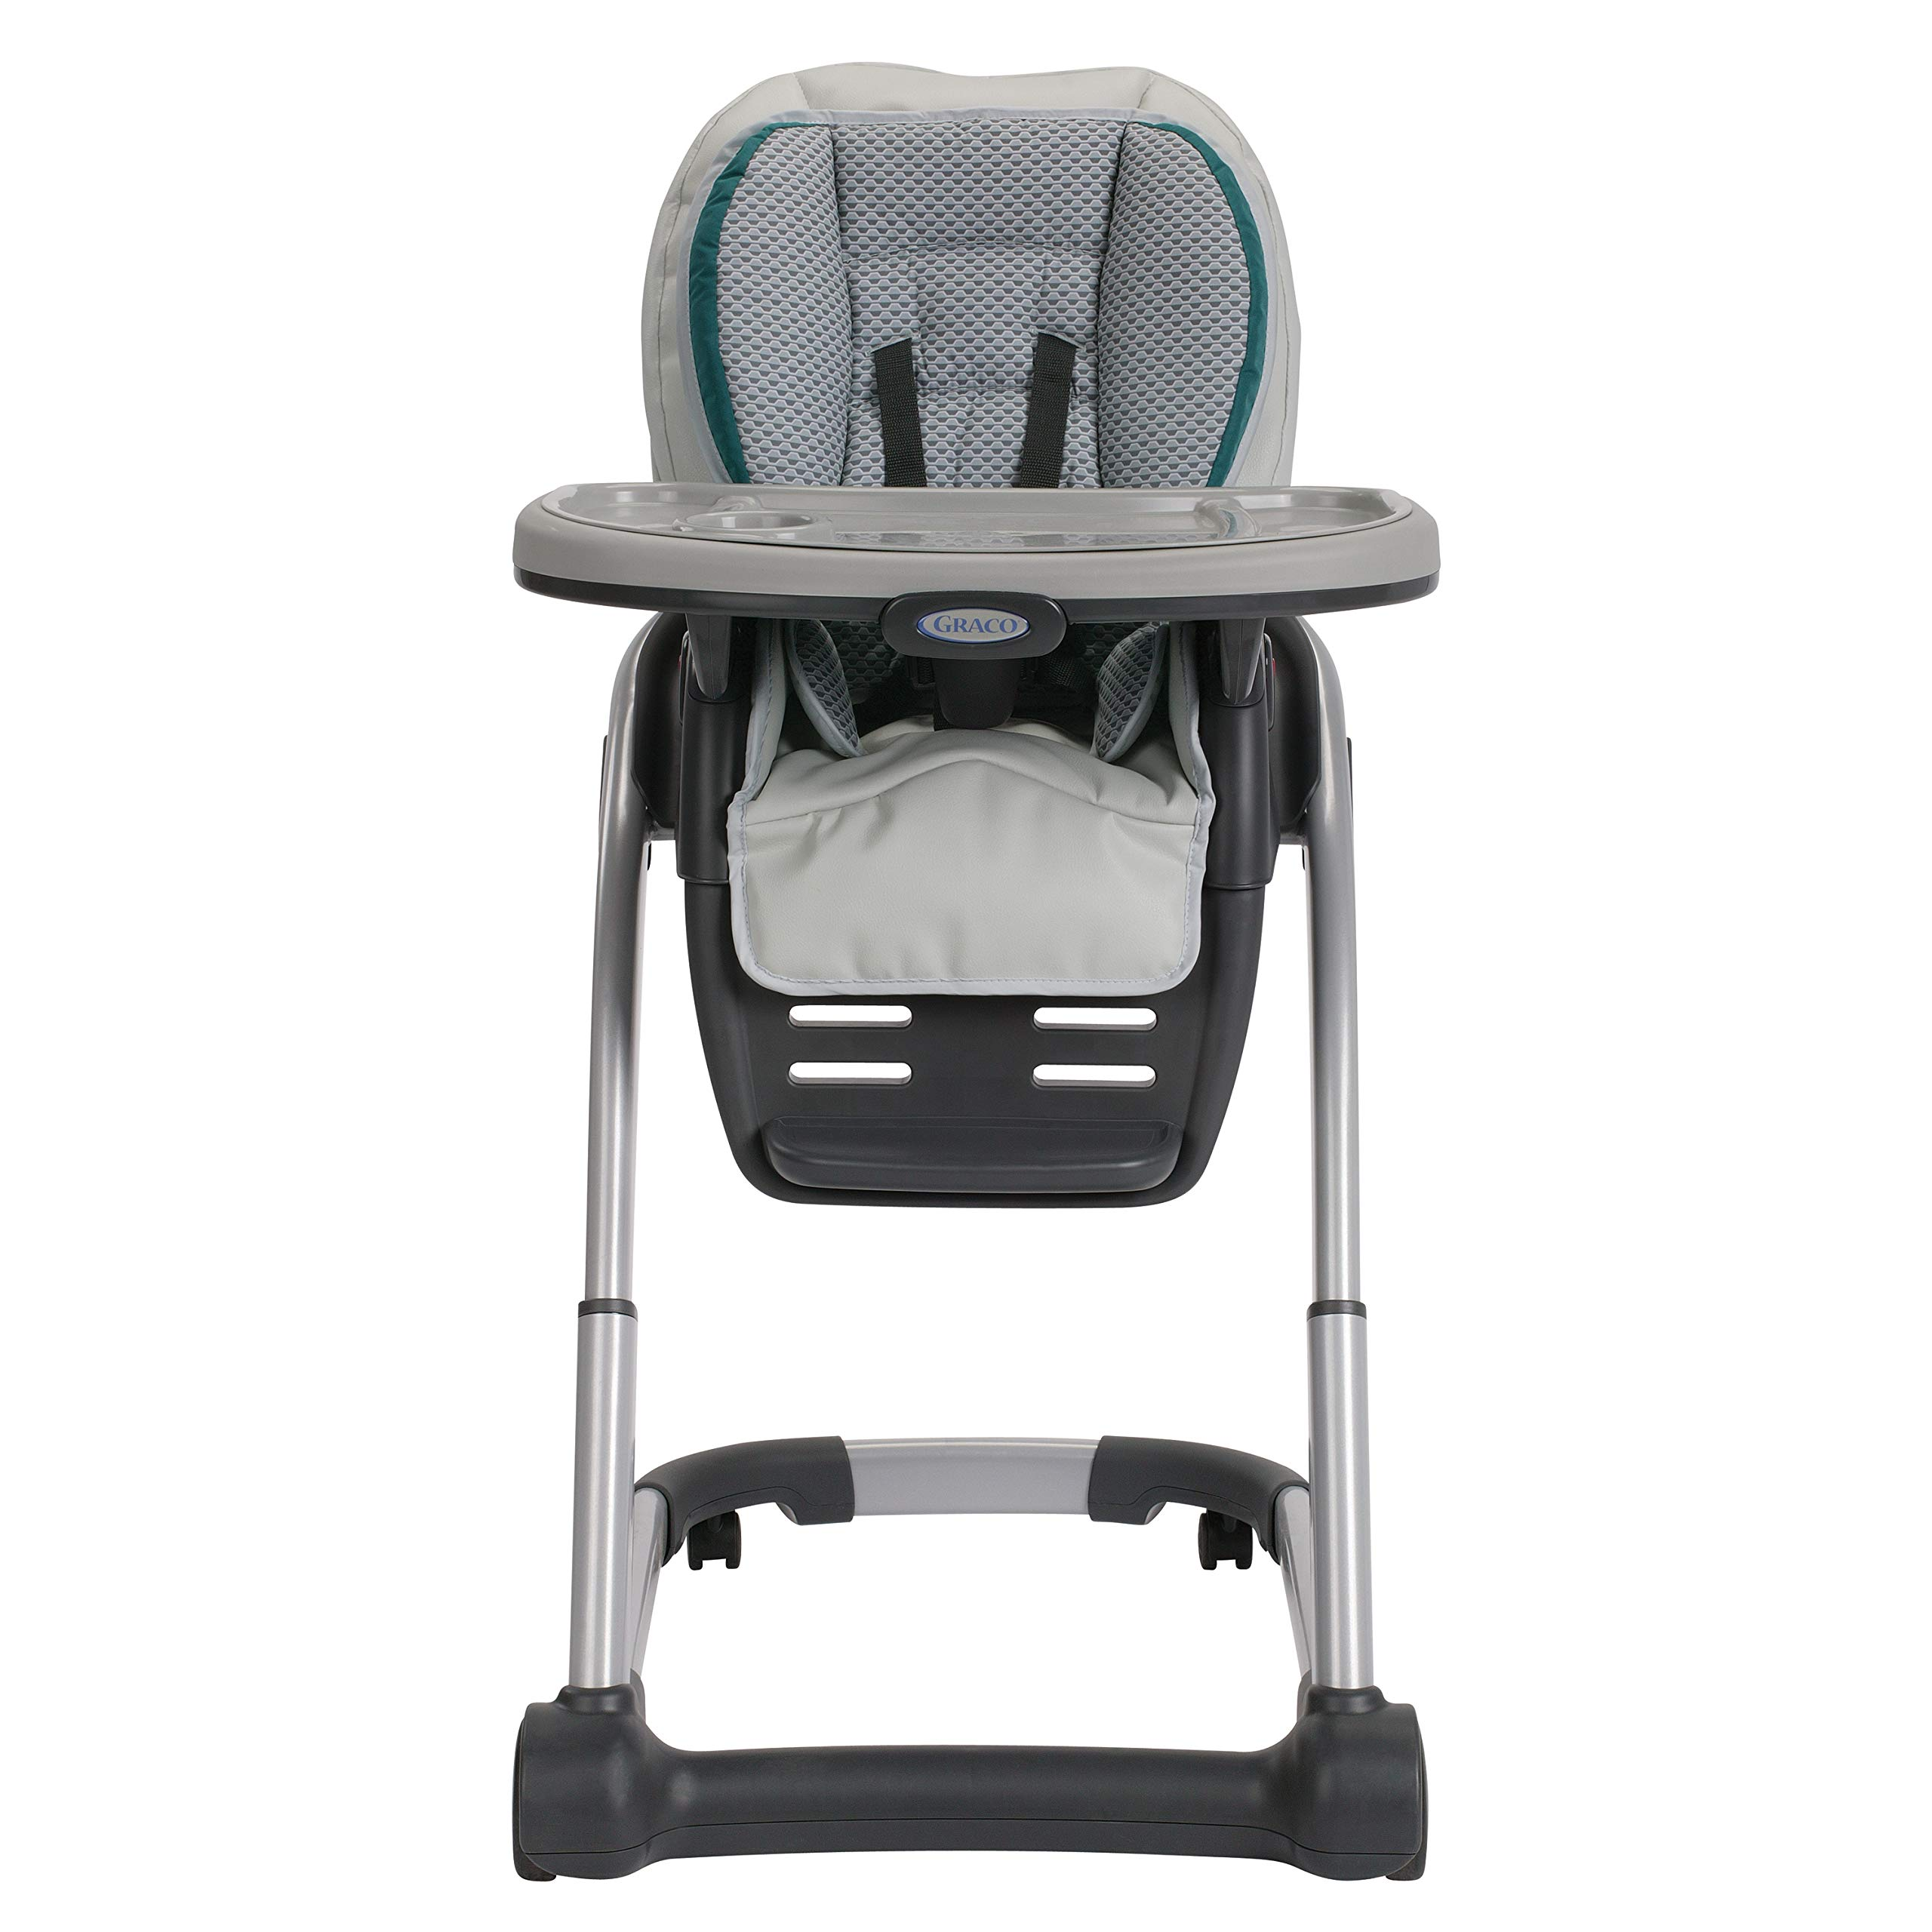 Graco Blossom 6-in-1 Convertible Highchair, Sapphire by Graco (Image #2)